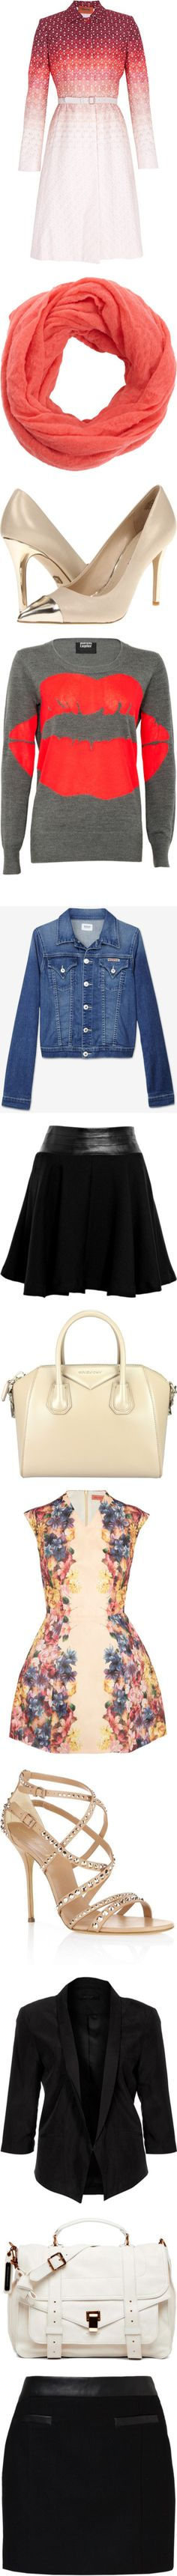 """Top Products for Dec 27th, 2012"" by polyvore ❤ liked on Polyvore"